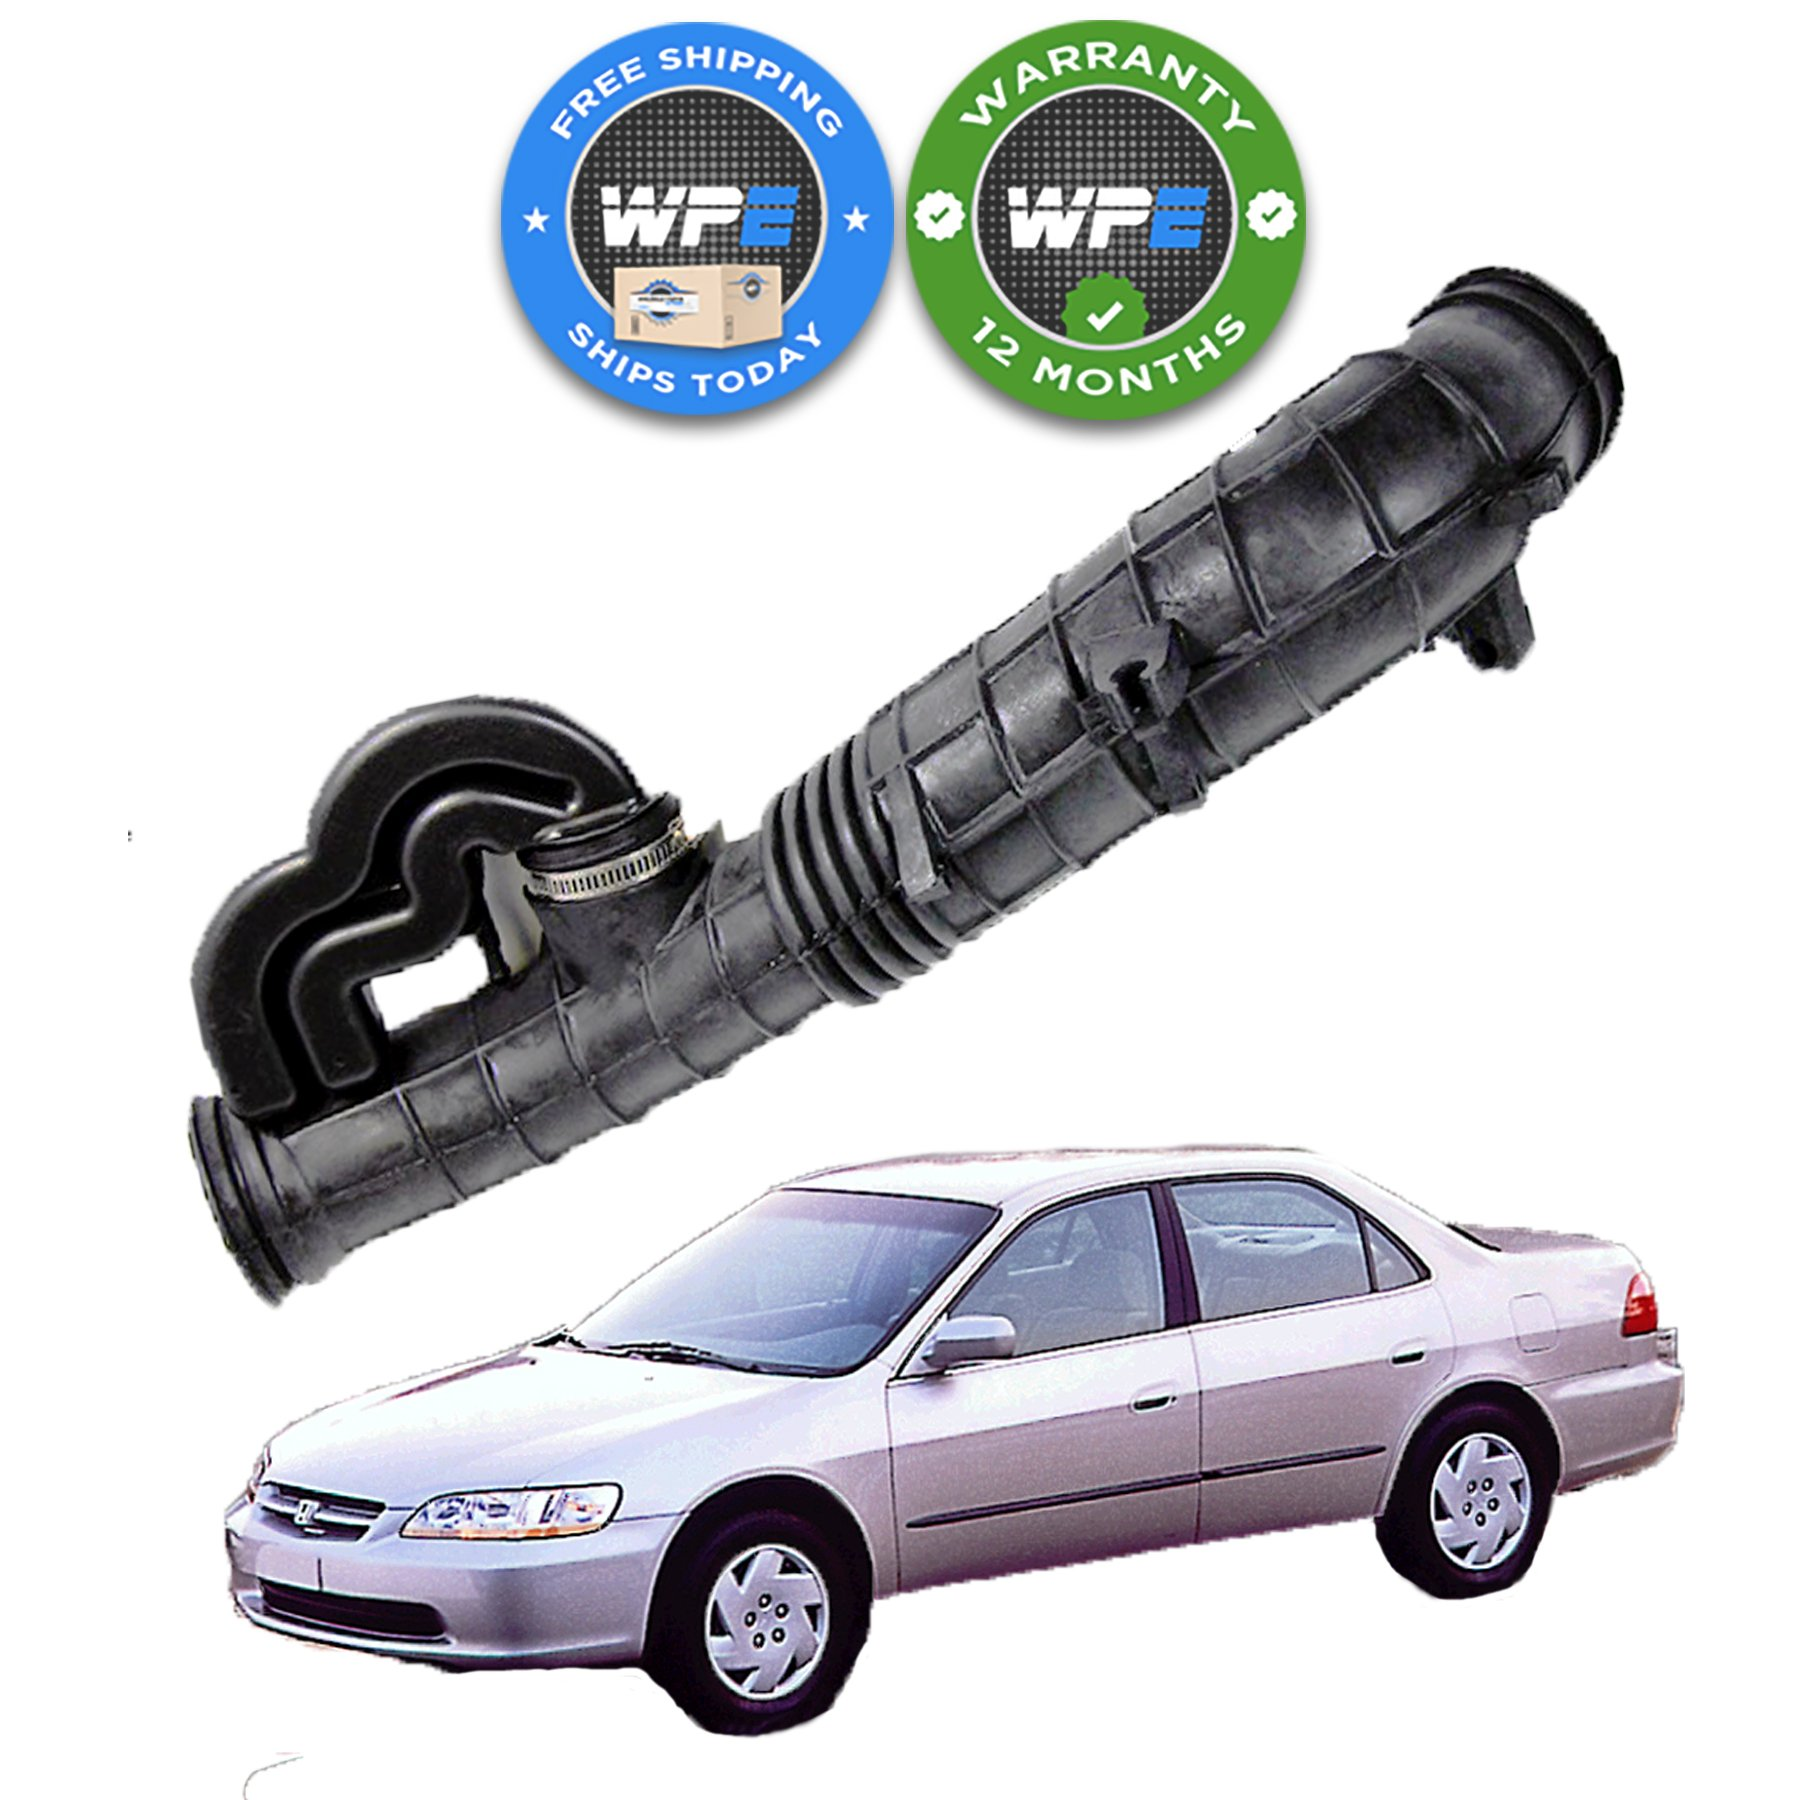 ECCPP Air Intake Hose Fit for 1998-2000 Honda Accord Compatible with 696-034 AIH551072H 17228PAAA00 17228-PAA-A00 Intake Boot Tube